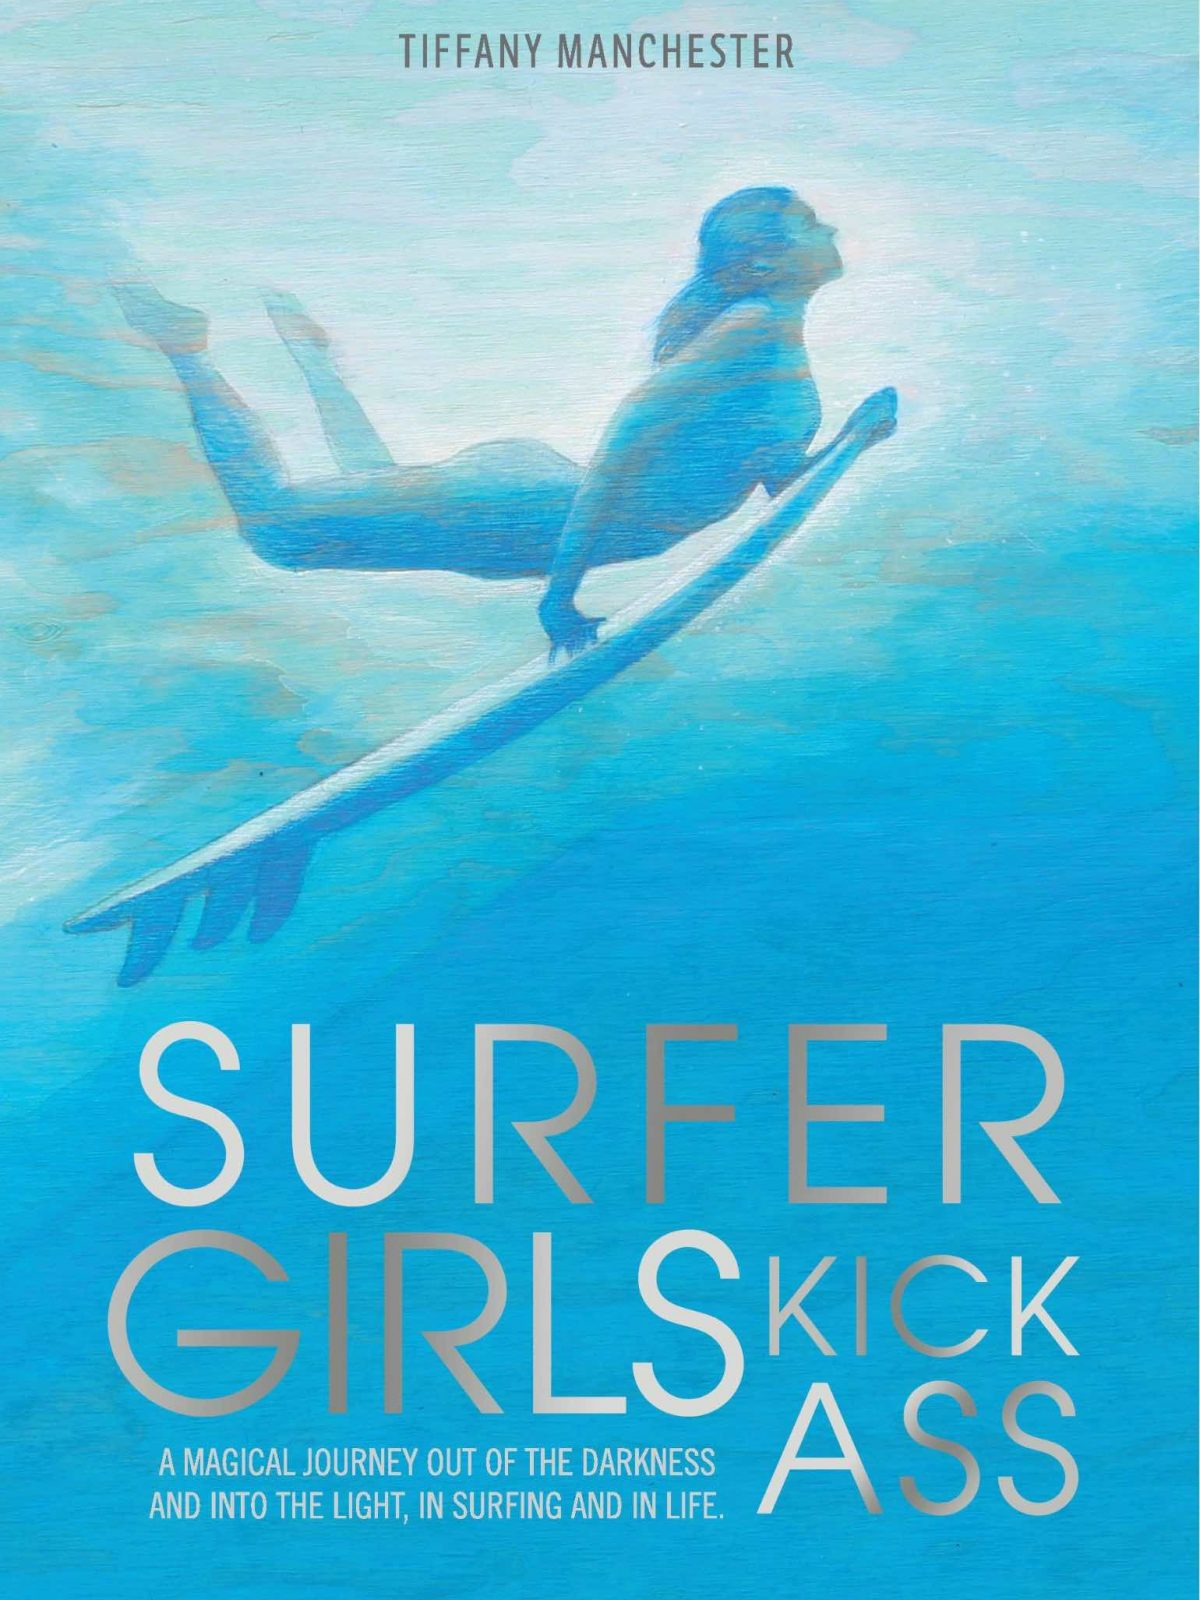 Tiffany Manchester Surfer Girls Kick Ass